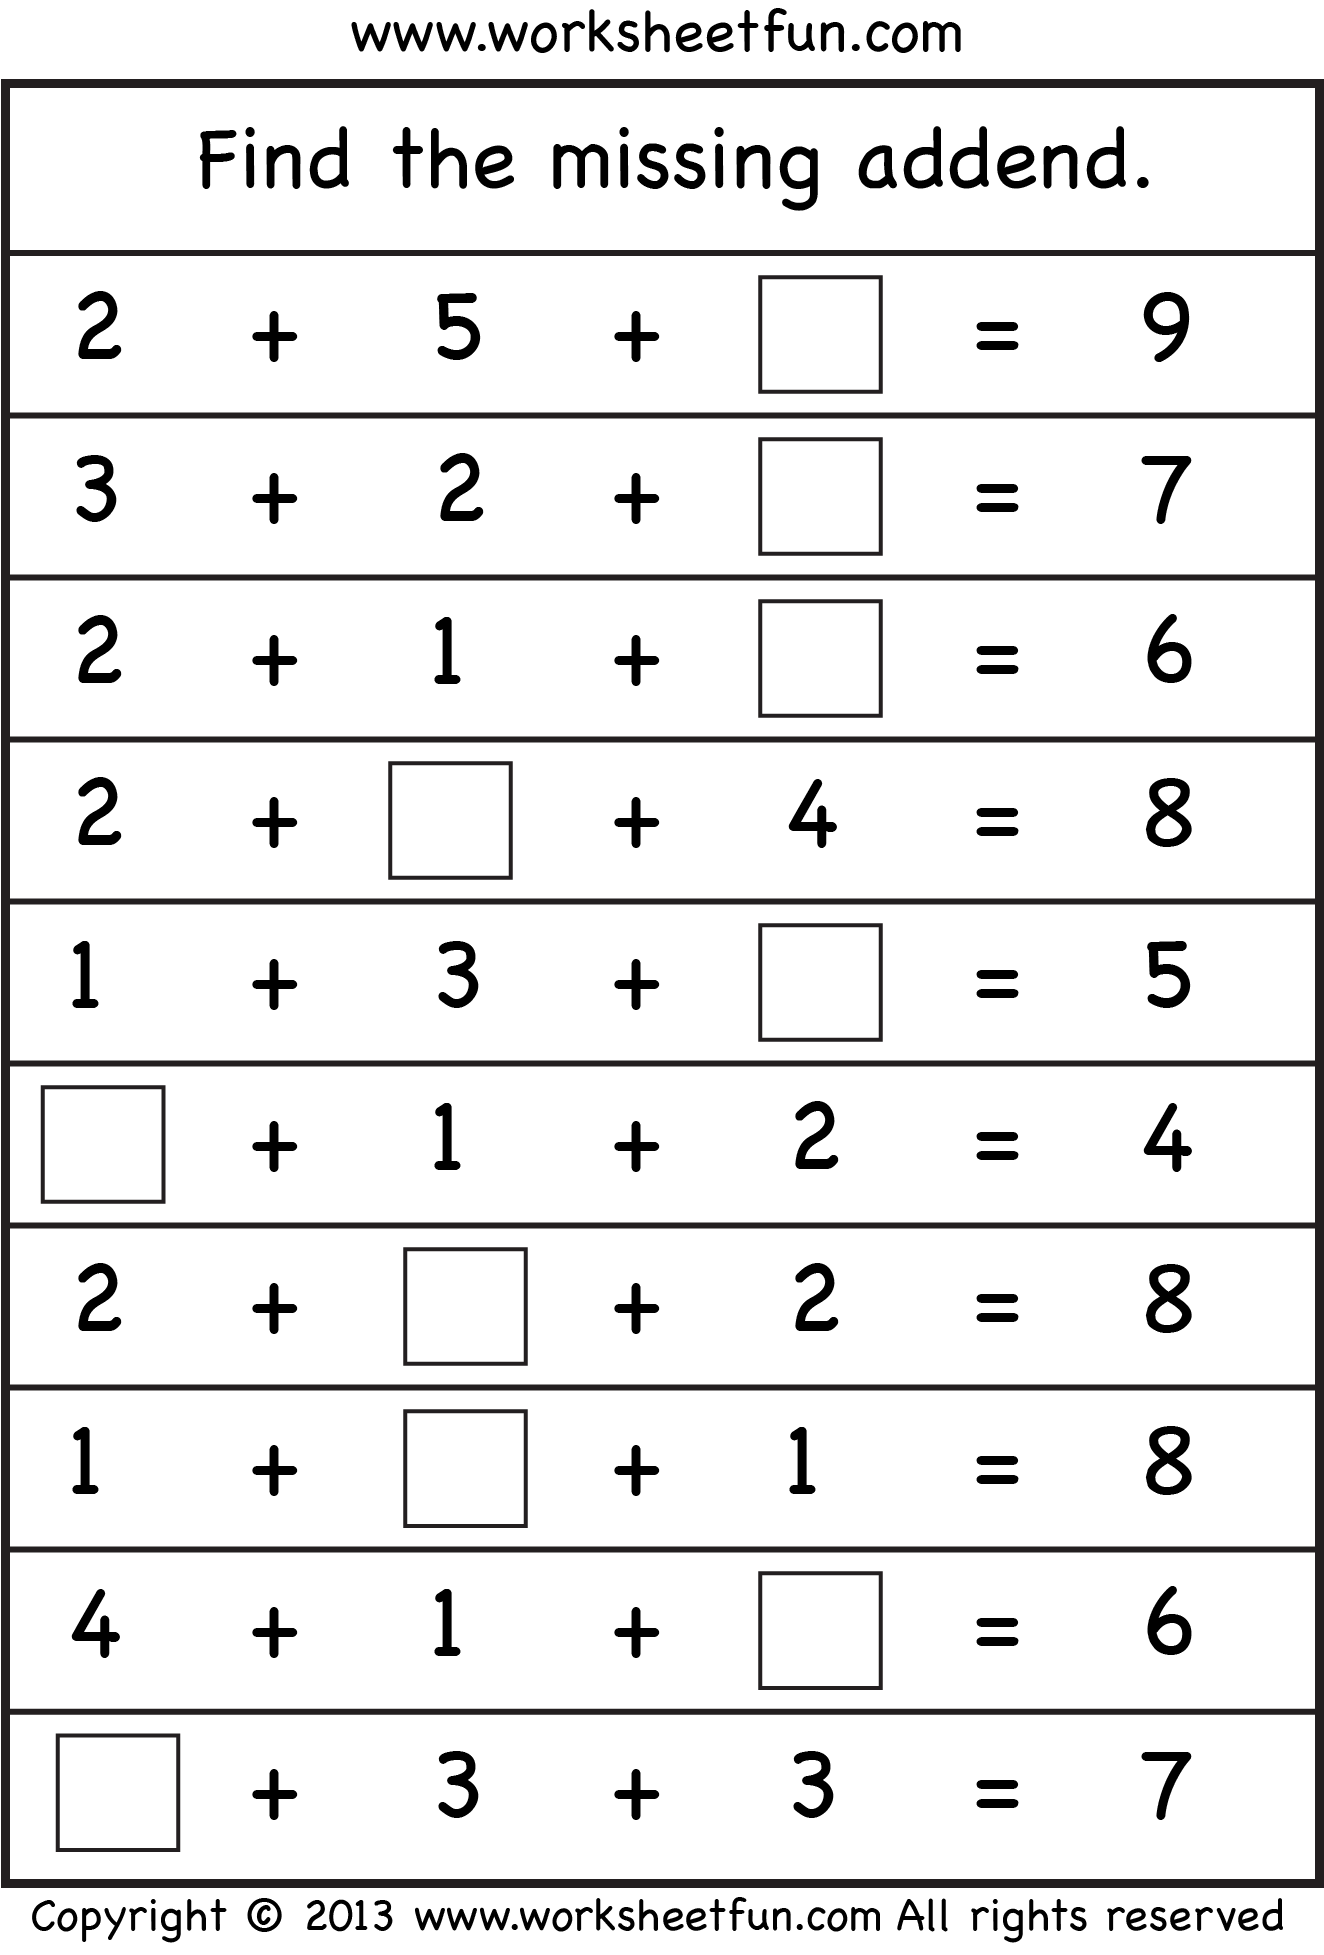 Lots of math worksheets to print out School Math – School Worksheets to Print